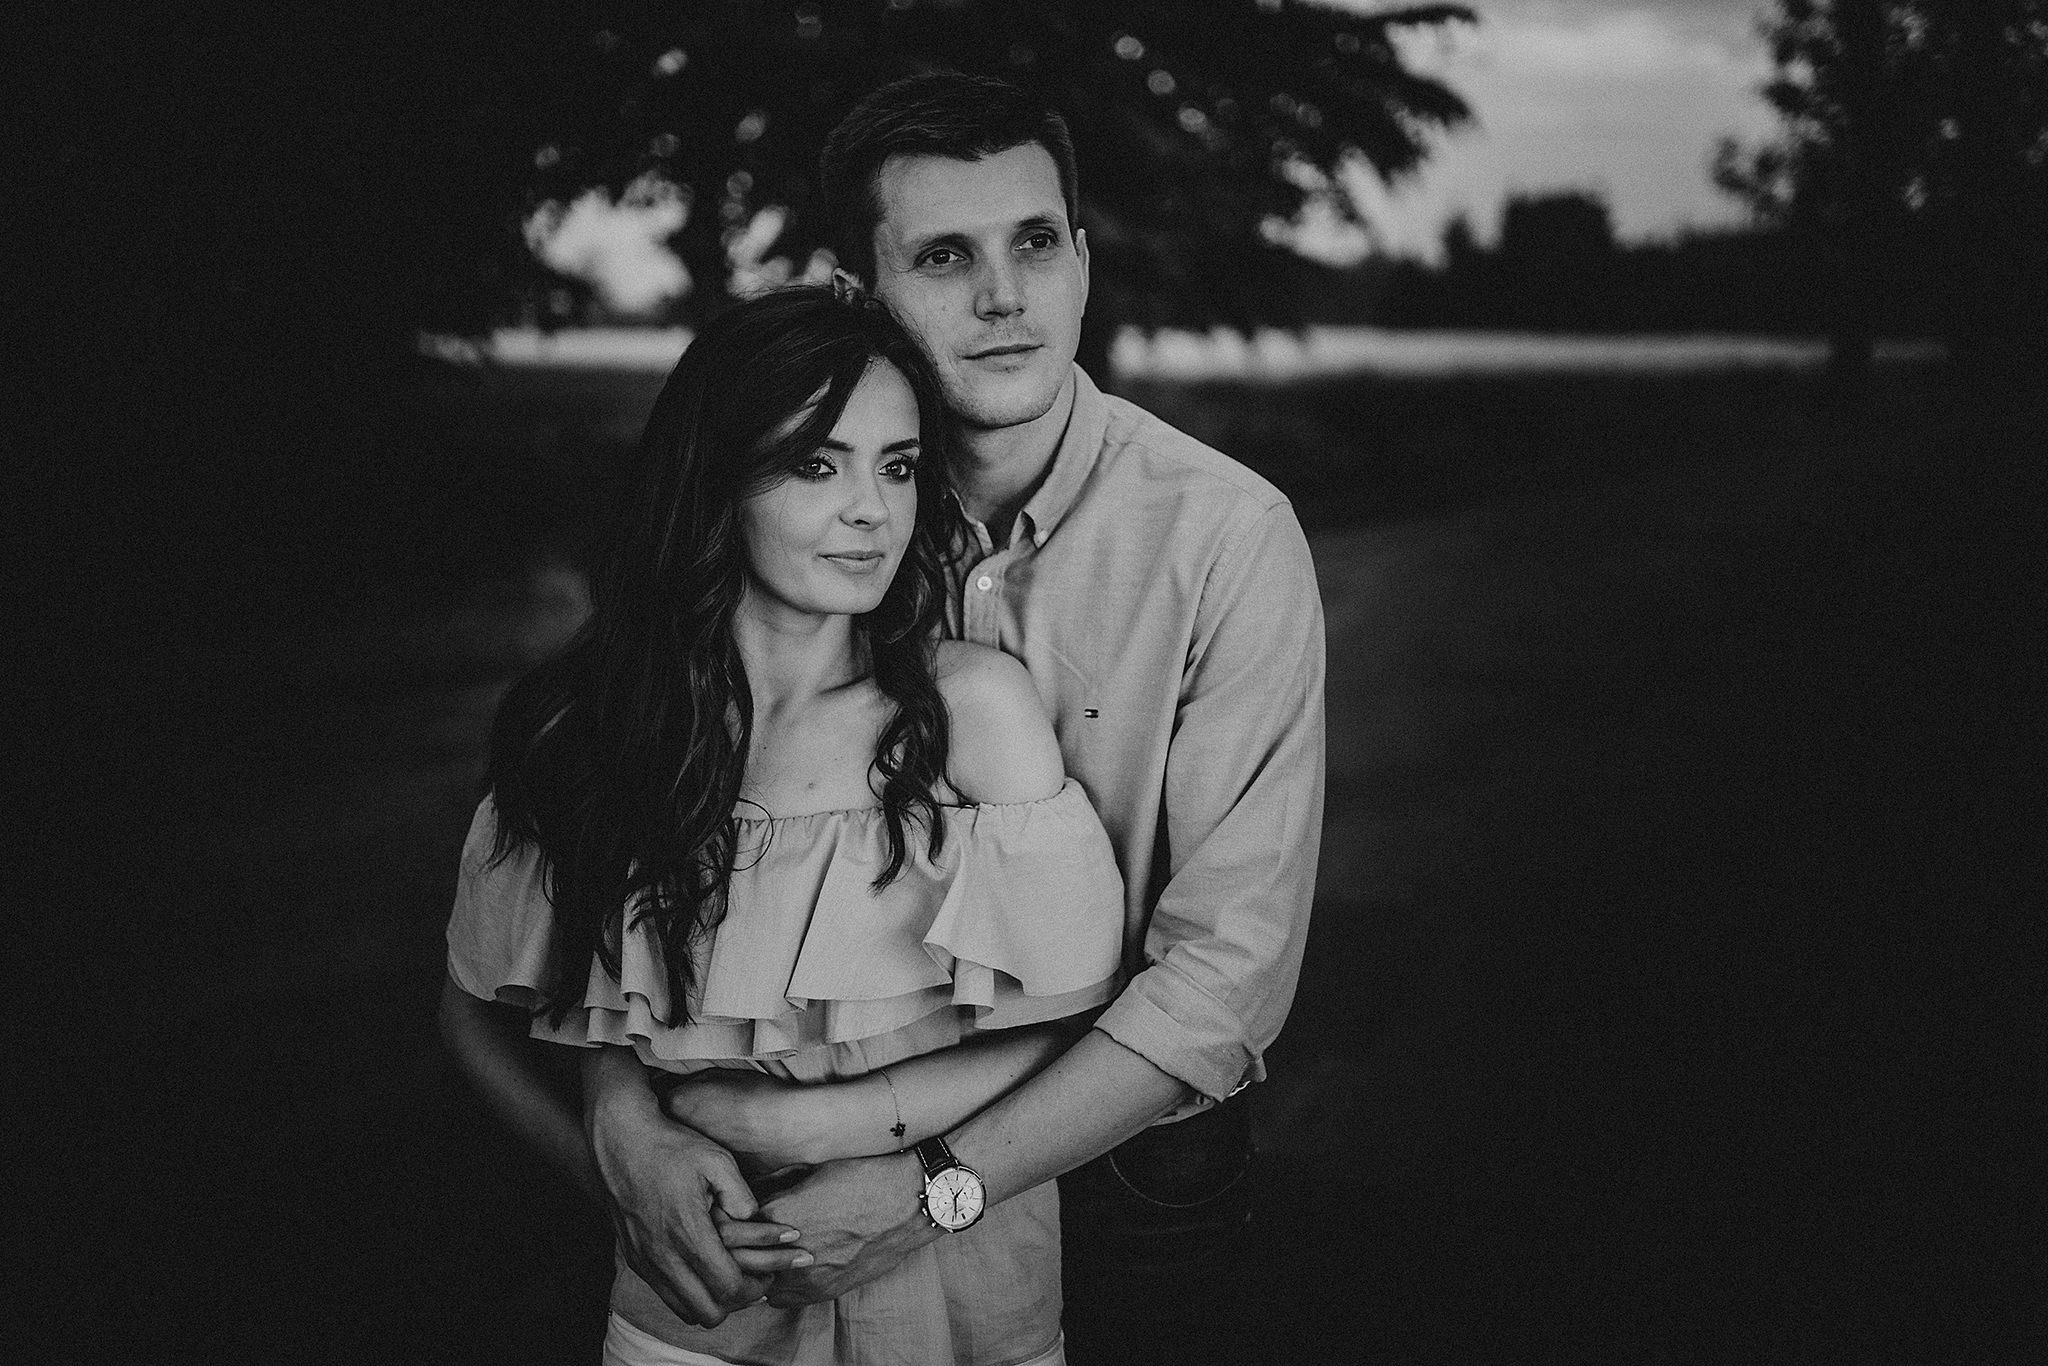 sunset engagement session photography